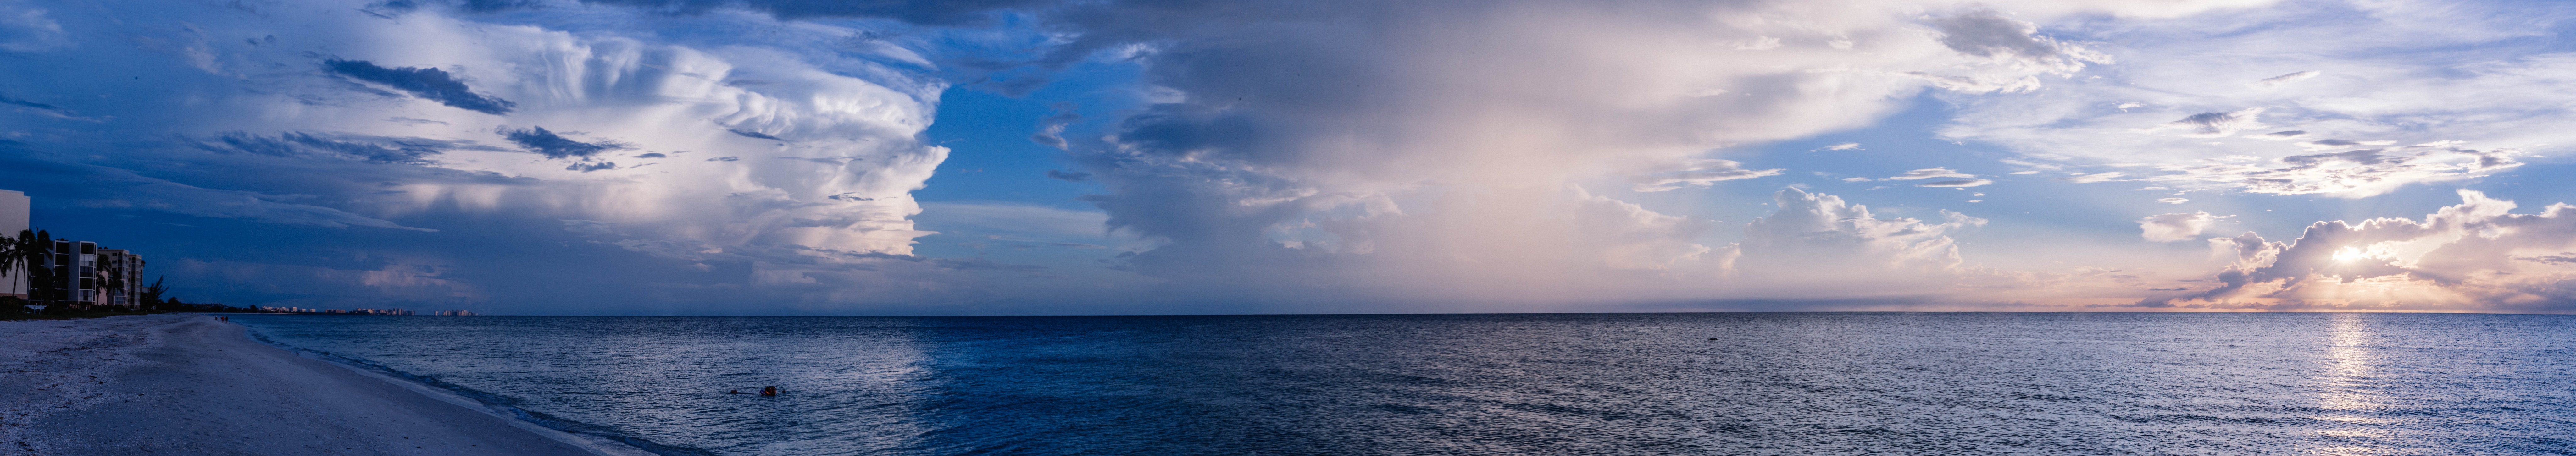 Large body of water under cloudy sky photo